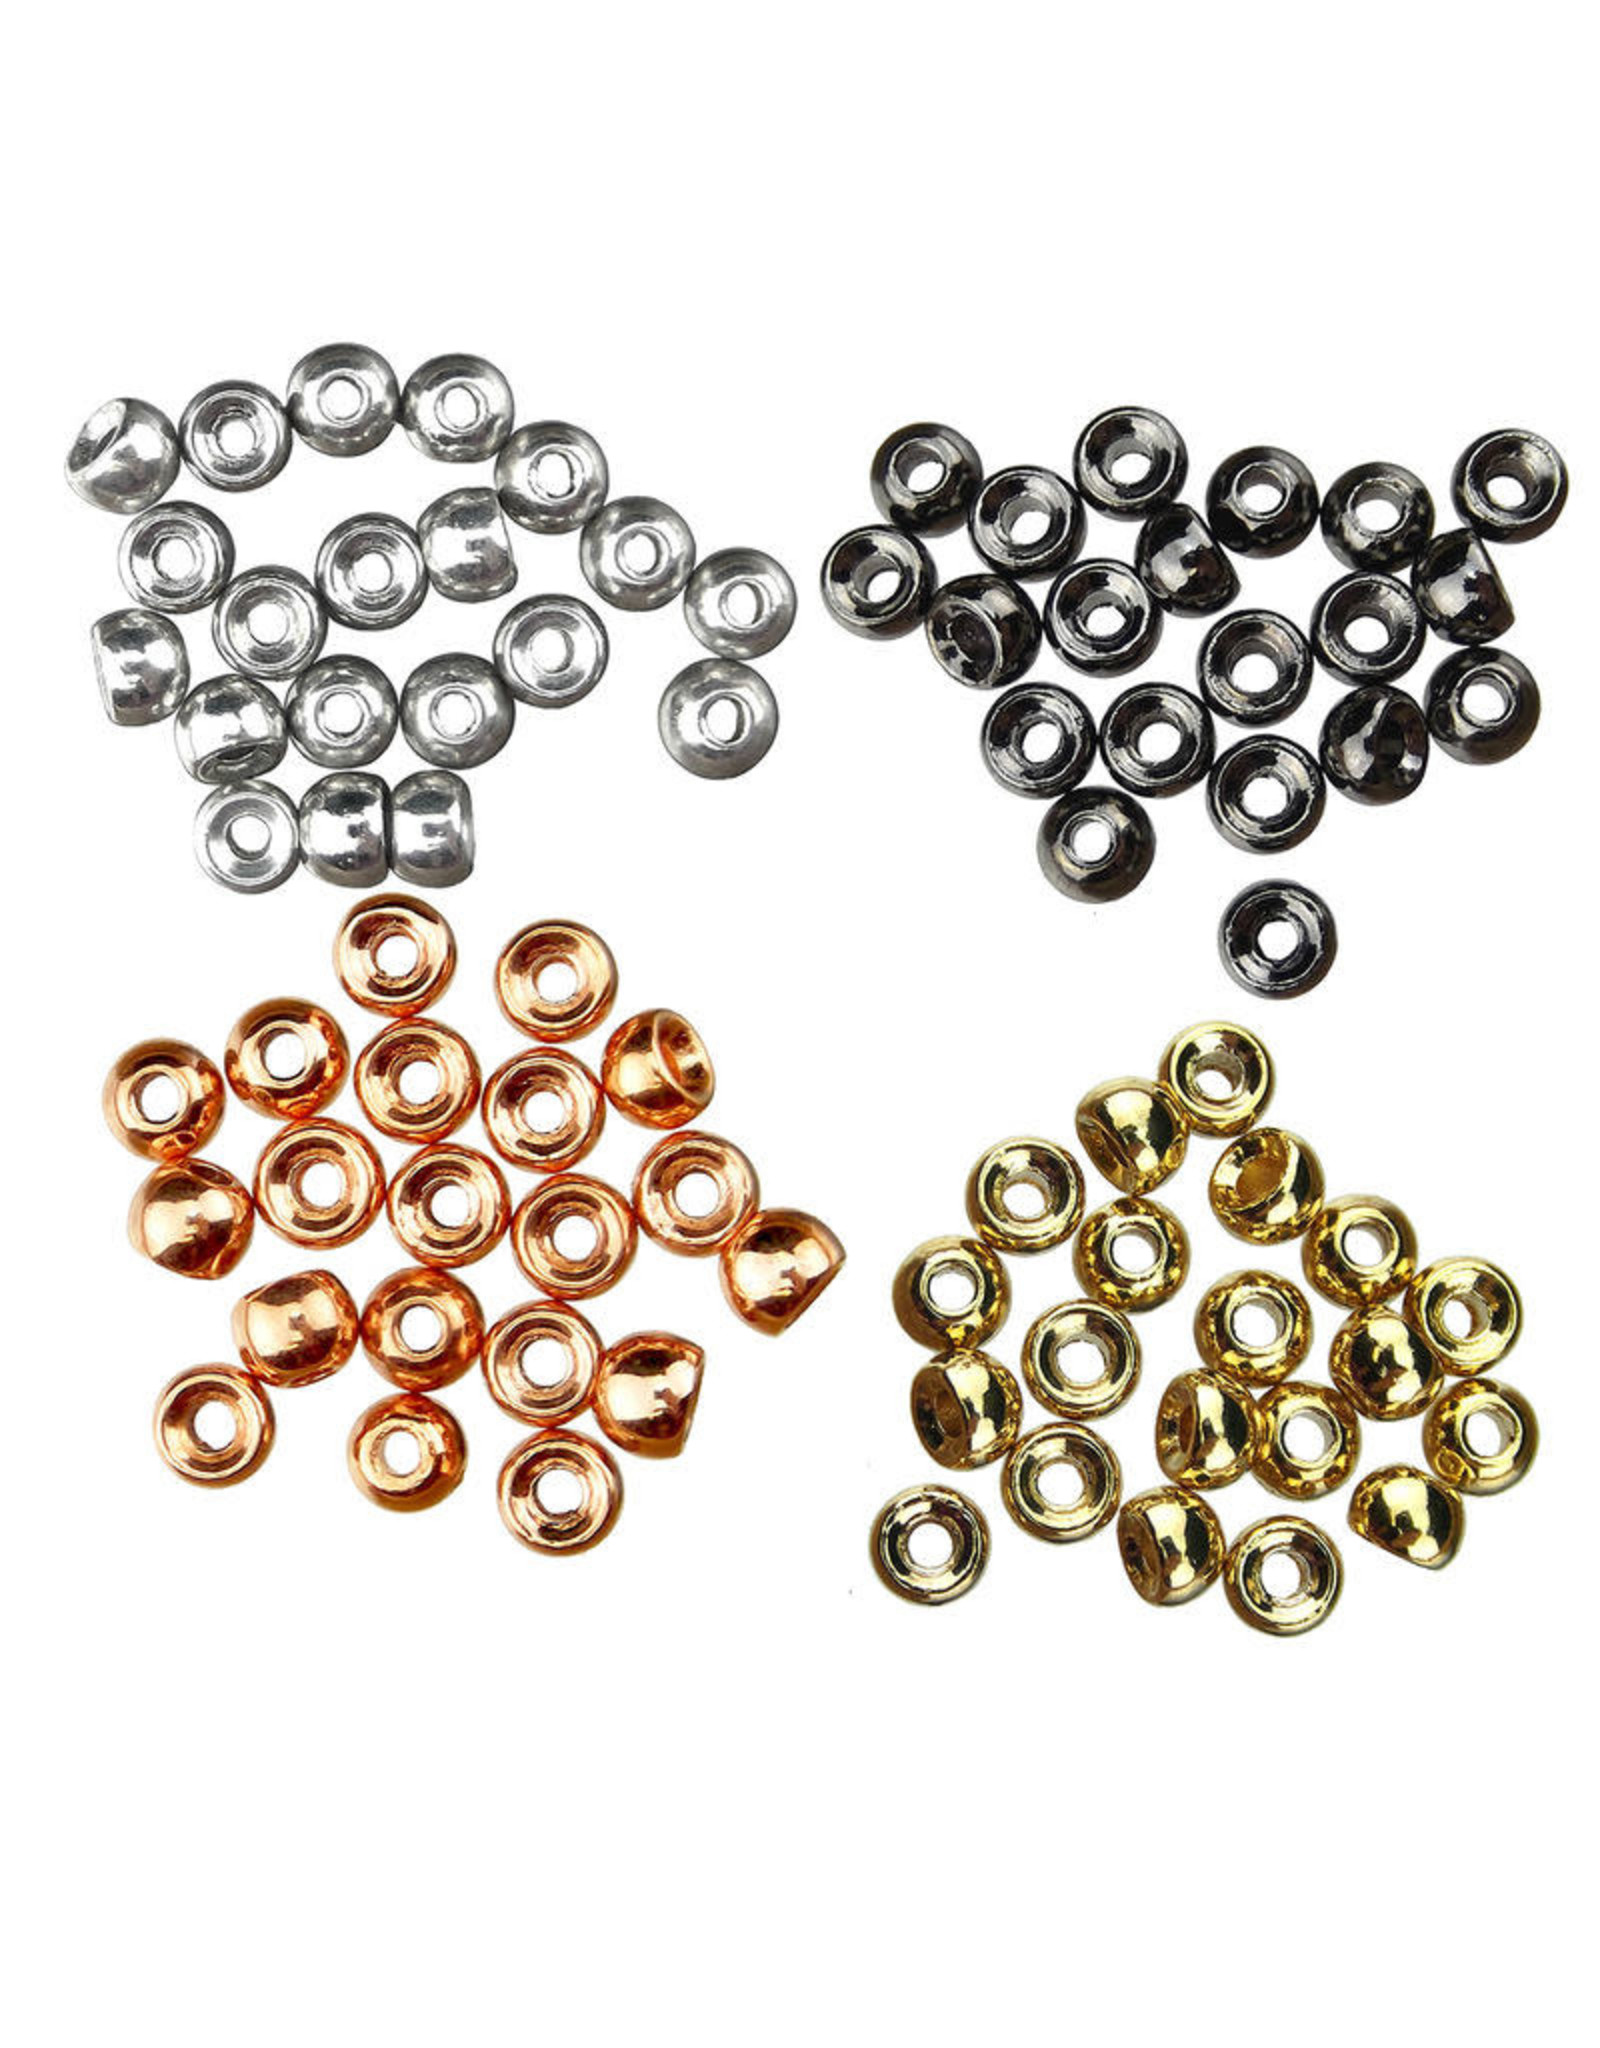 Spirit River Spirit River Tungsten Beads - 3mm Nickel